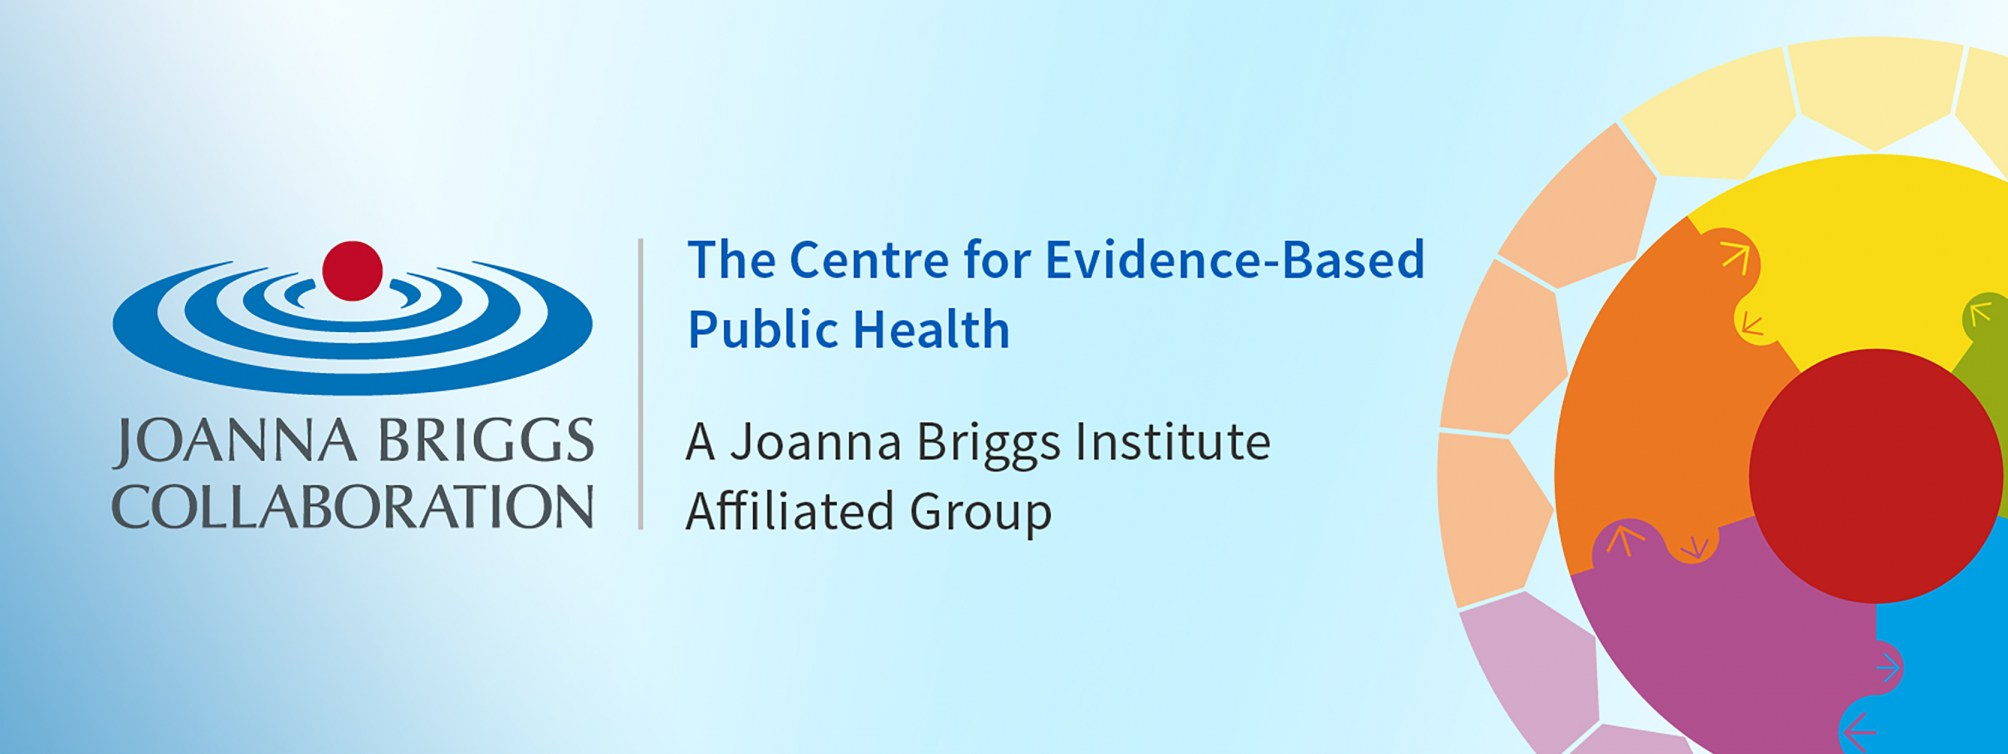 Centre for Evidence-Based Public Health